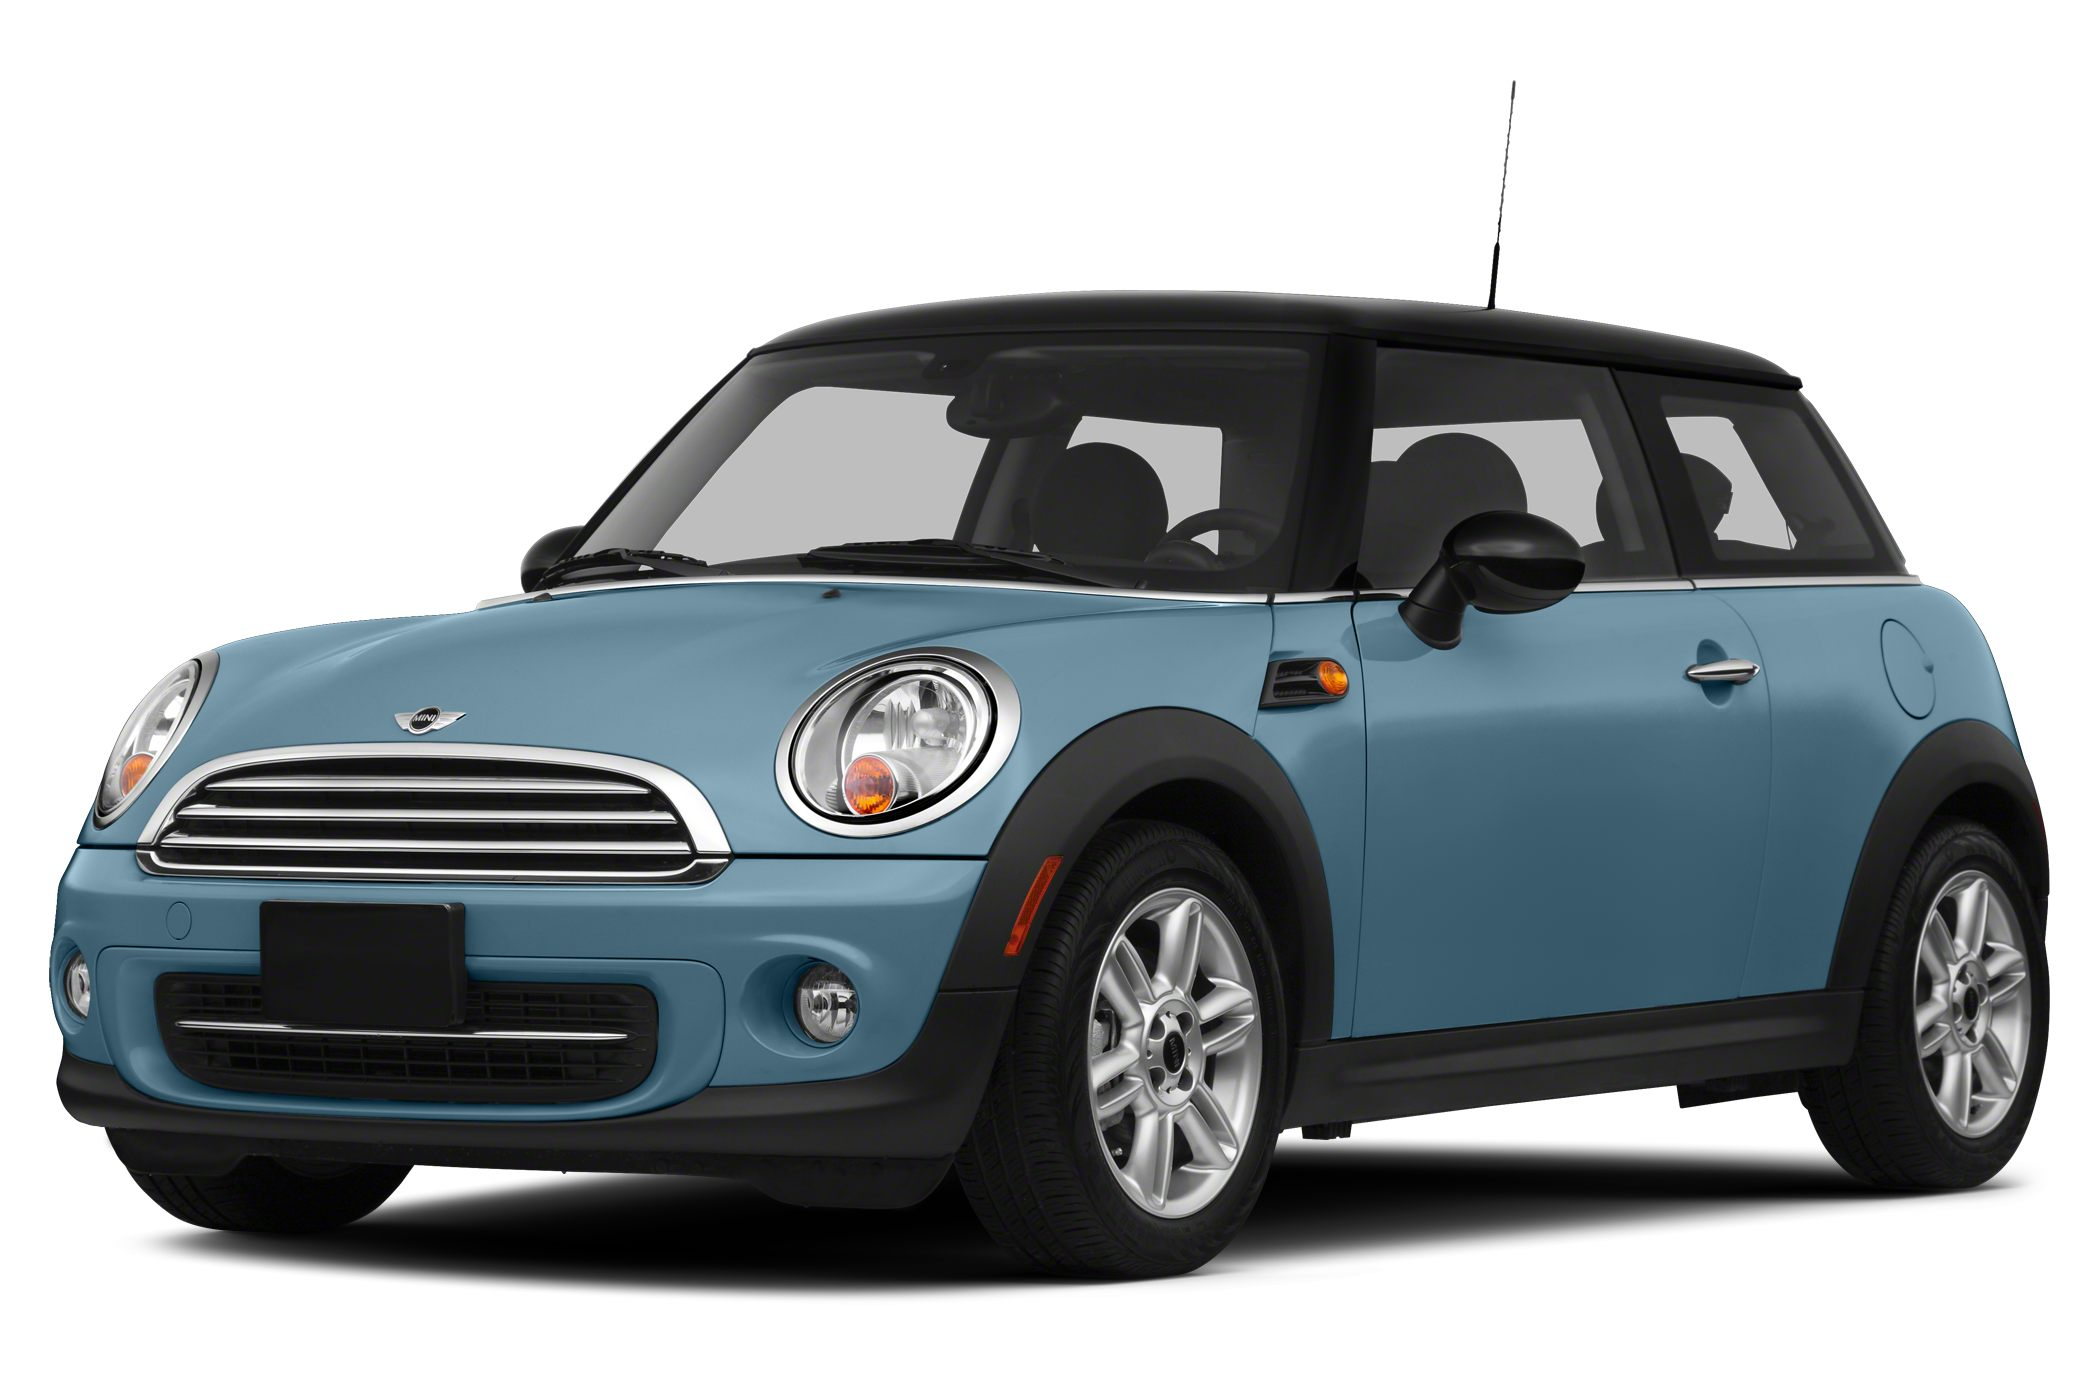 2013 MINI Hardtop Cooper Hatchback for sale in San Diego for $16,899 with 16,077 miles.